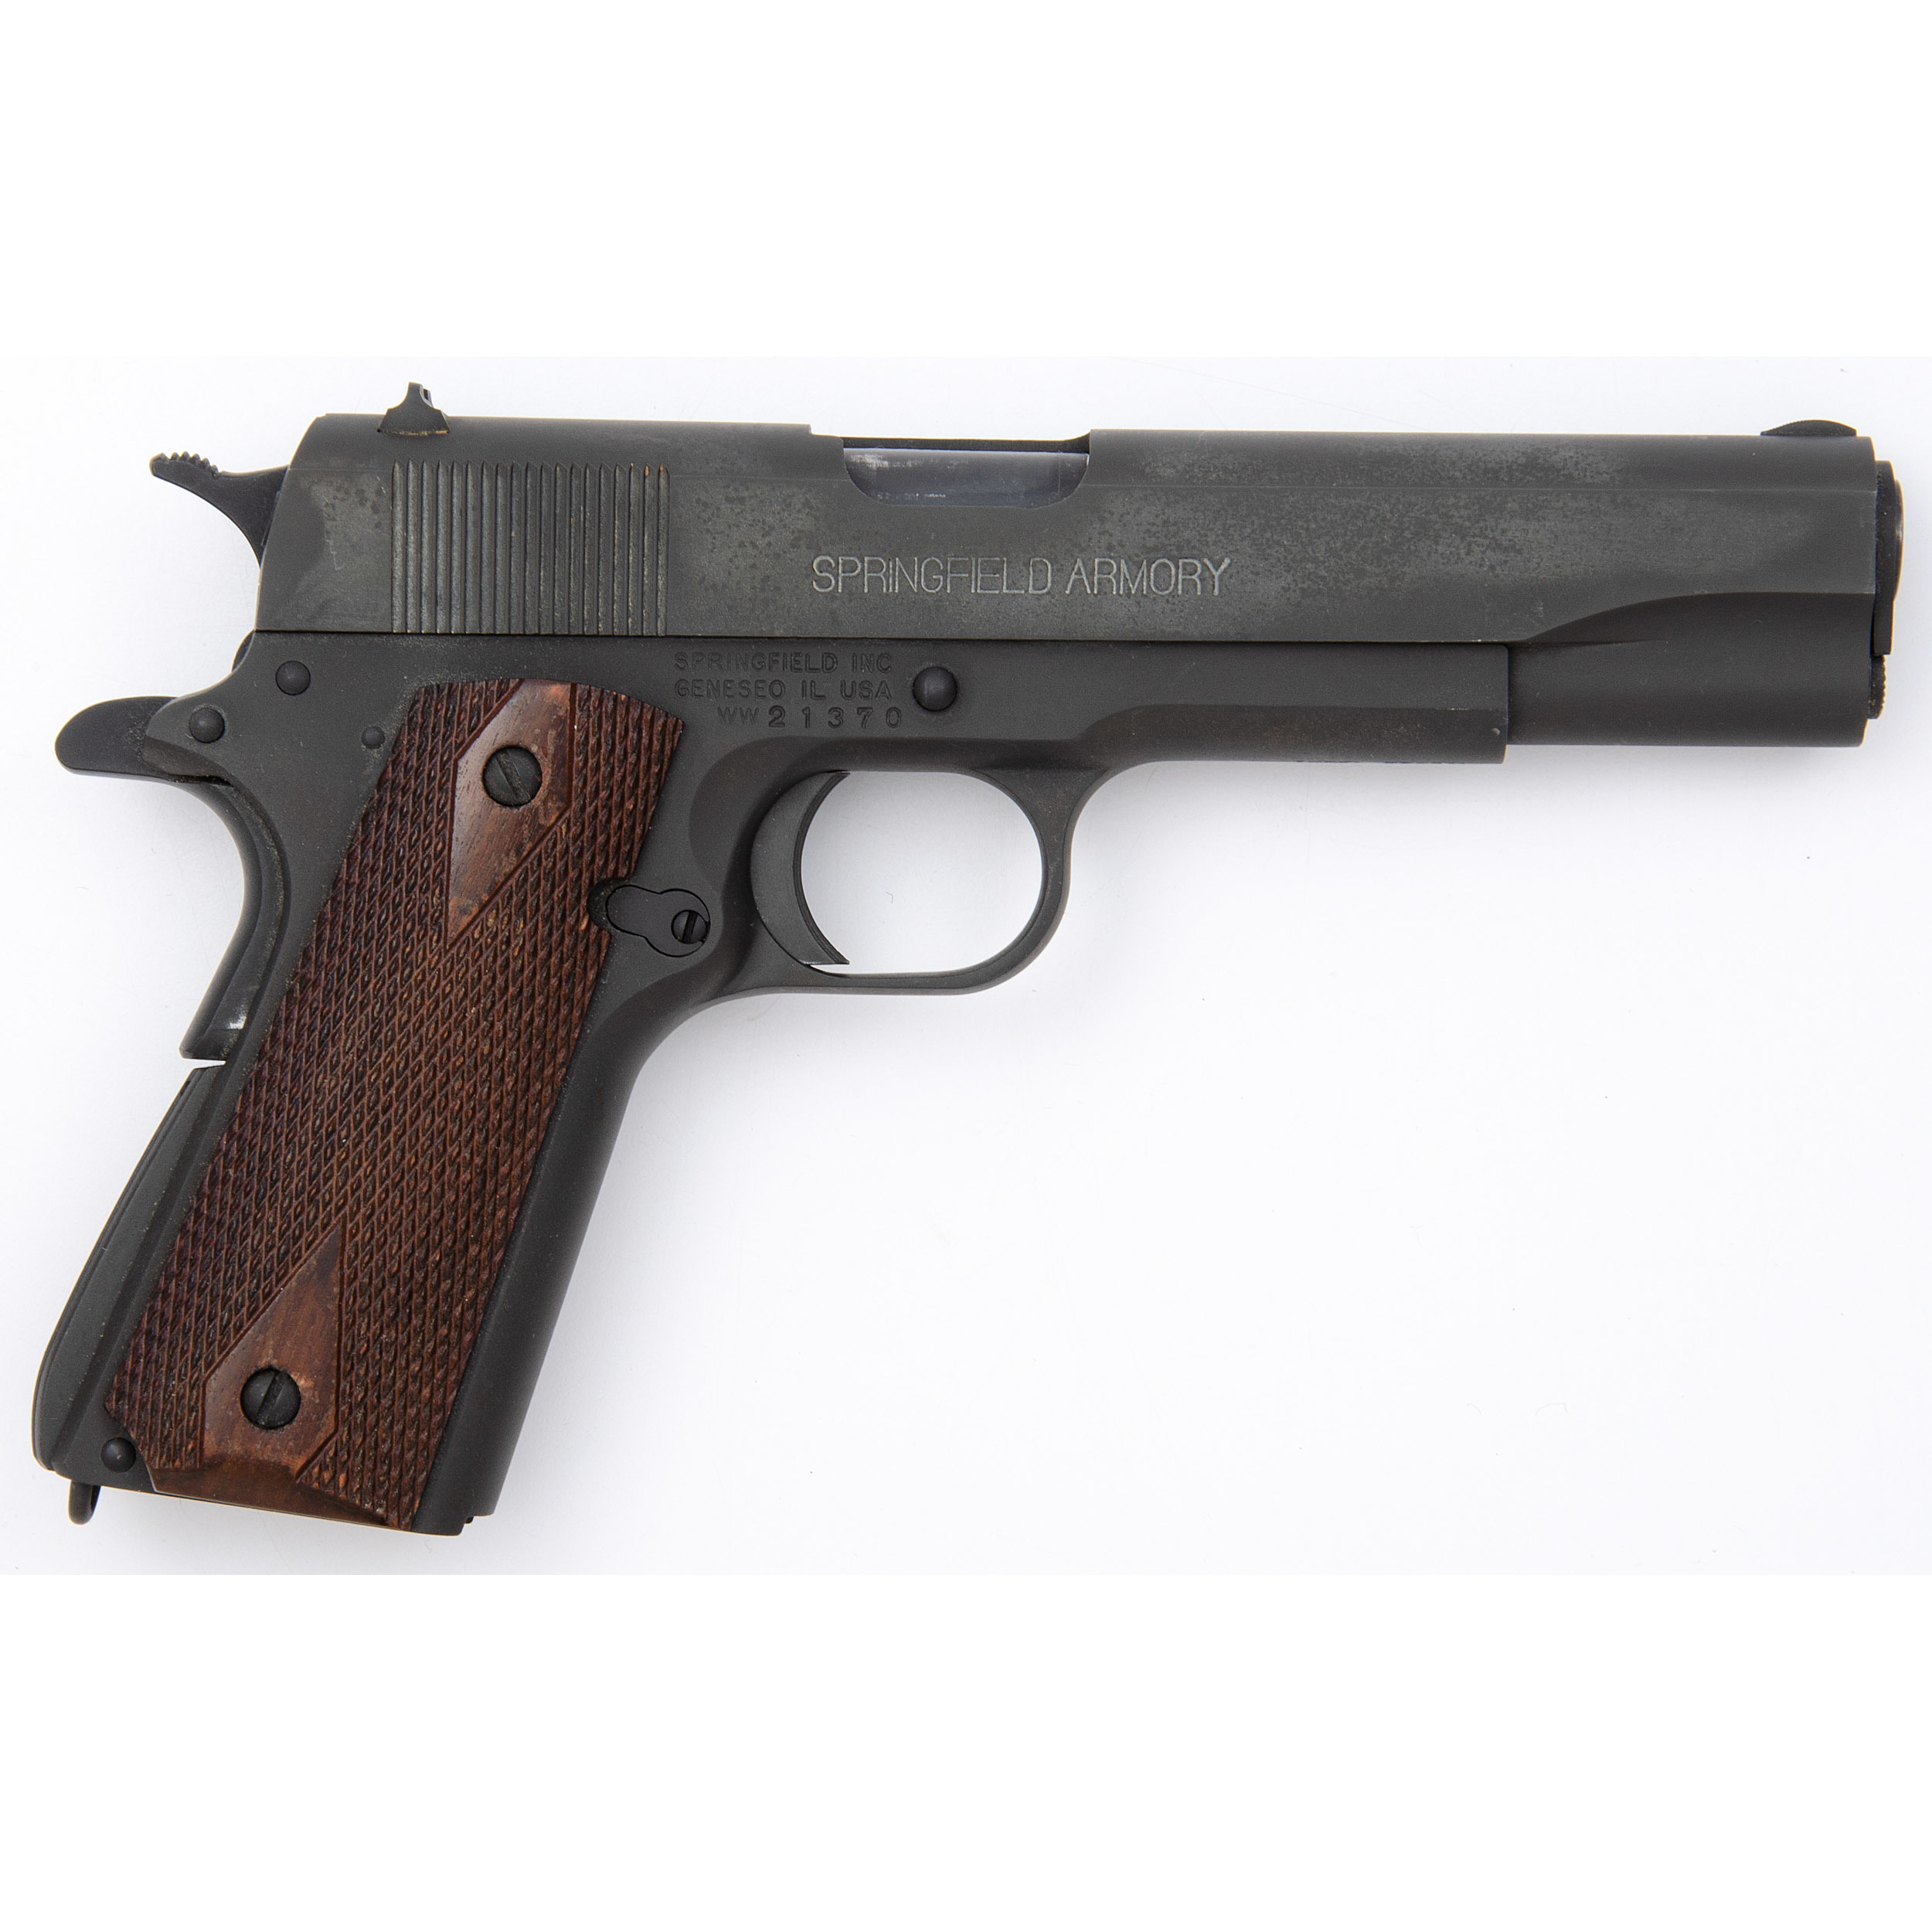 Springfield Armory 1911-A1 Pistol | Cowan's Auction House: The